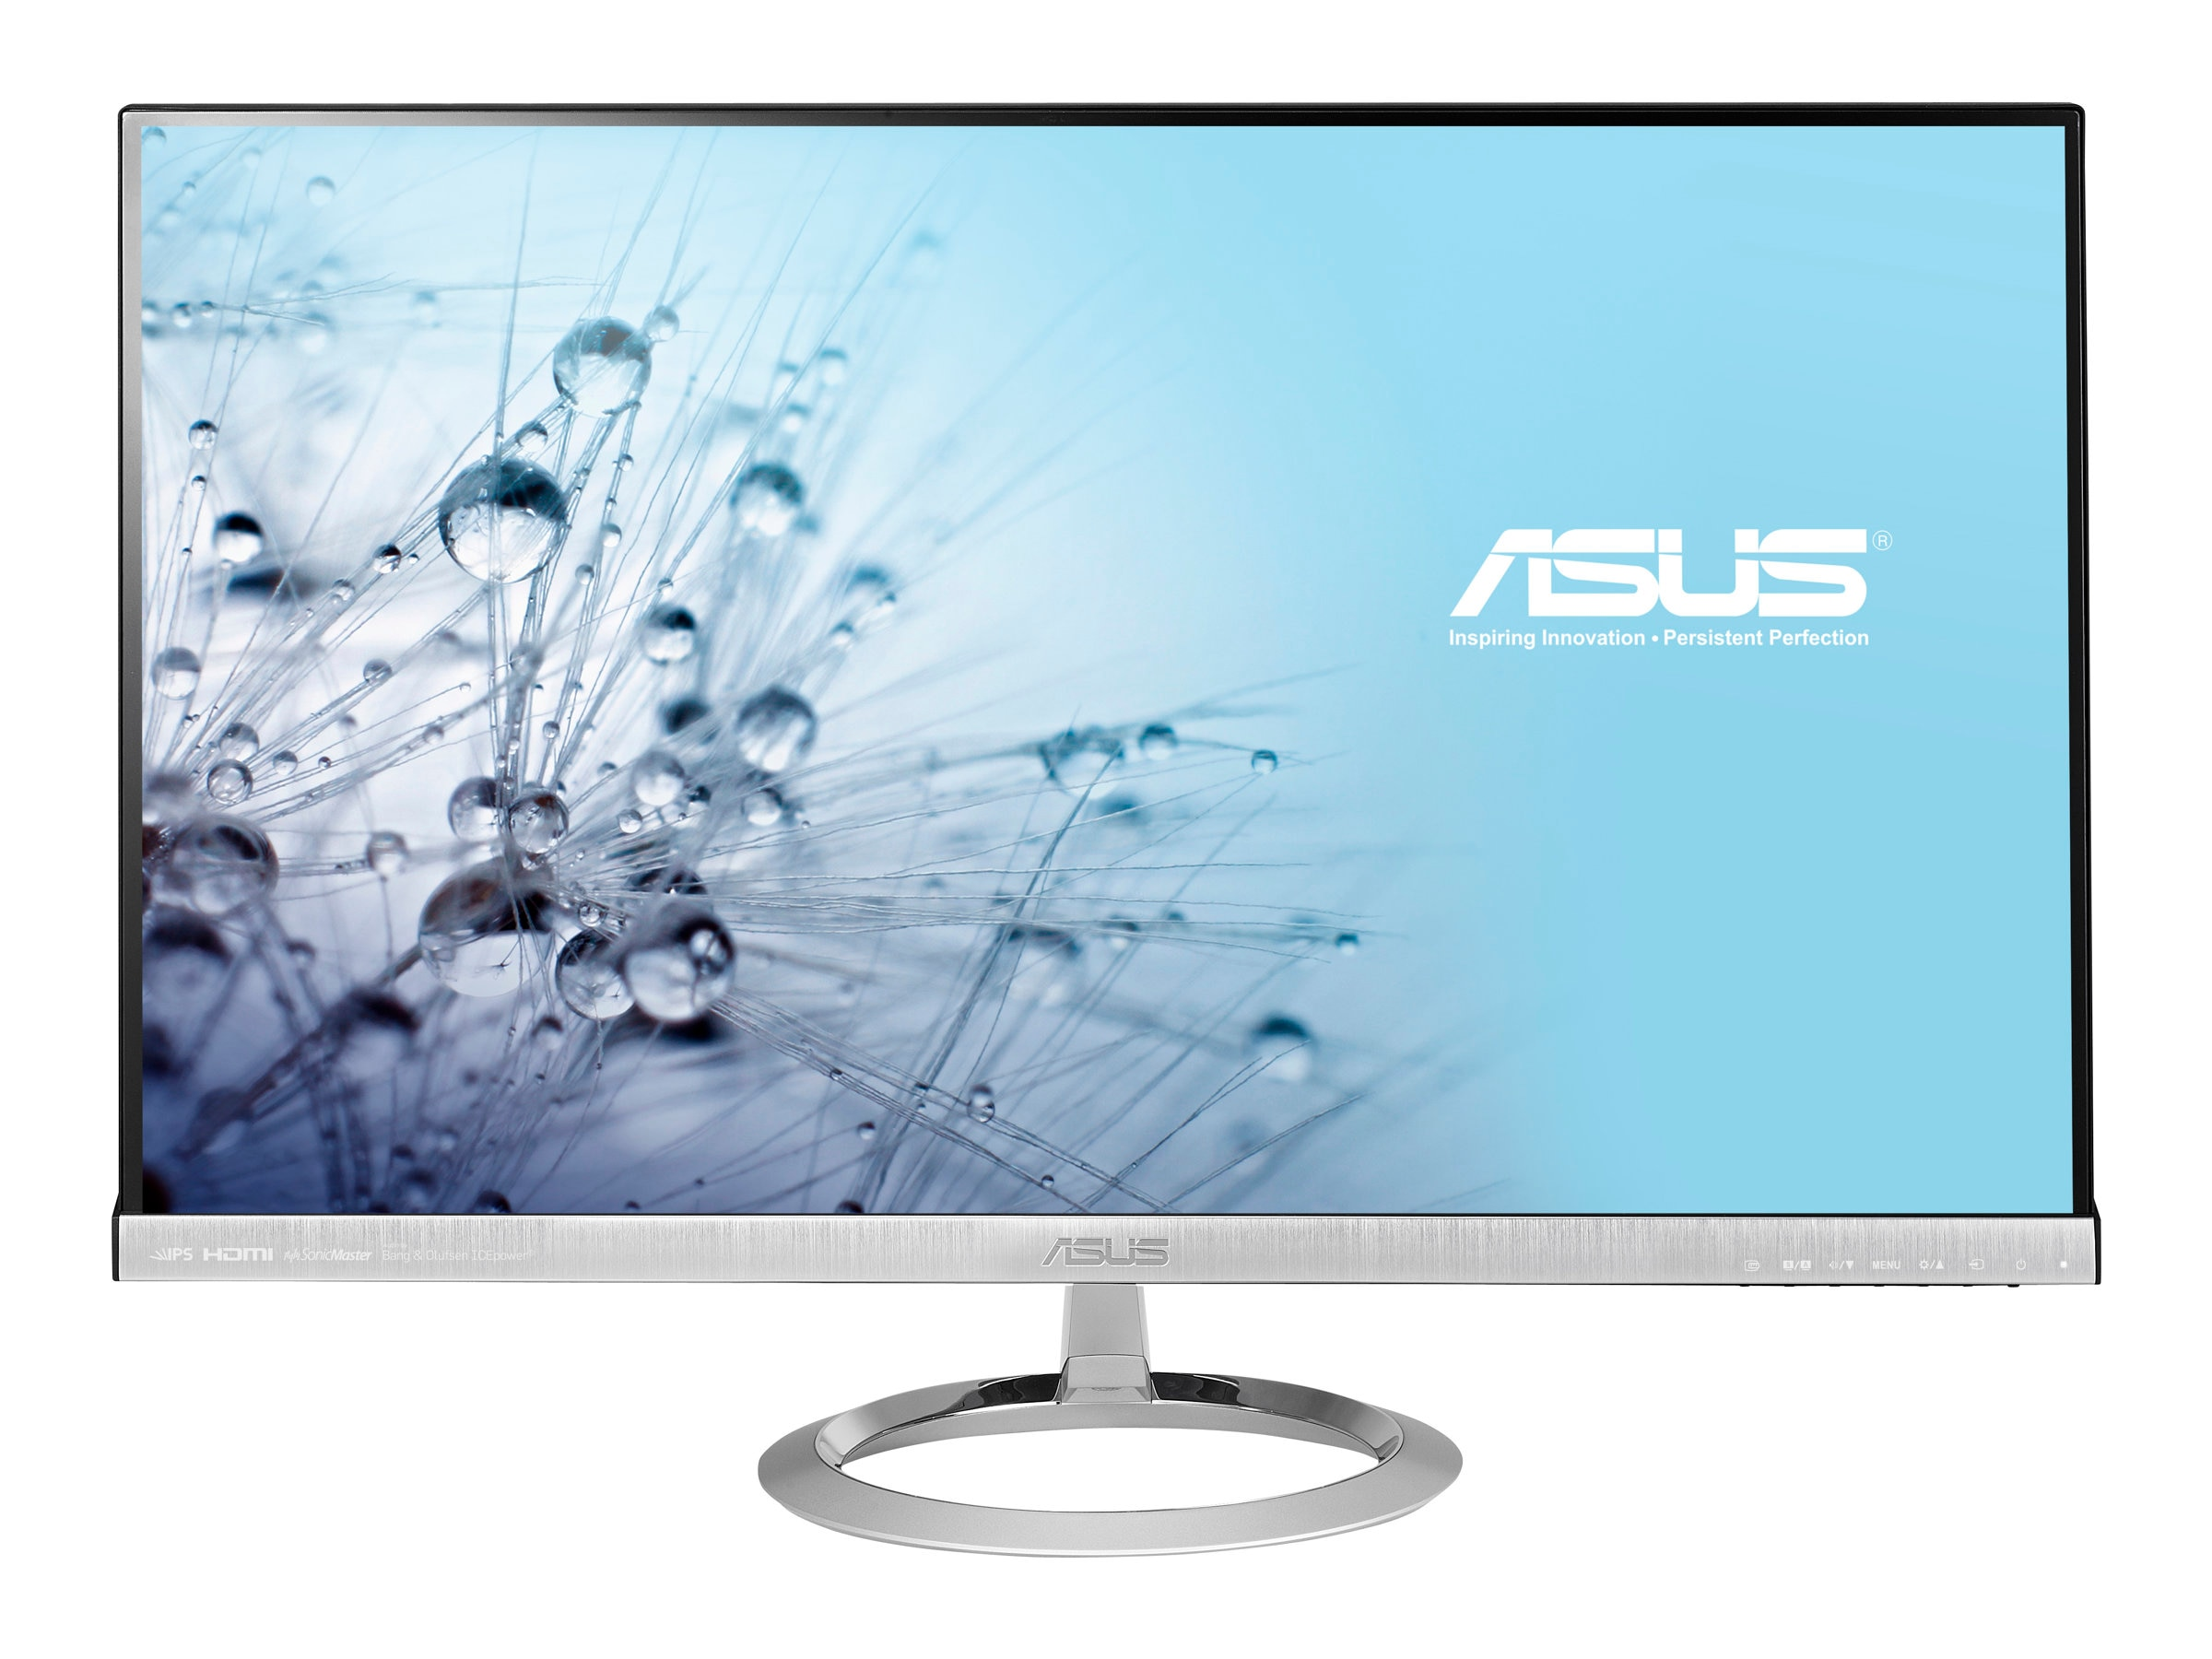 Asus 27 MX279H Full HD LED-LCD Frameless Monitor, MX279H, 15225106, Monitors - LED-LCD